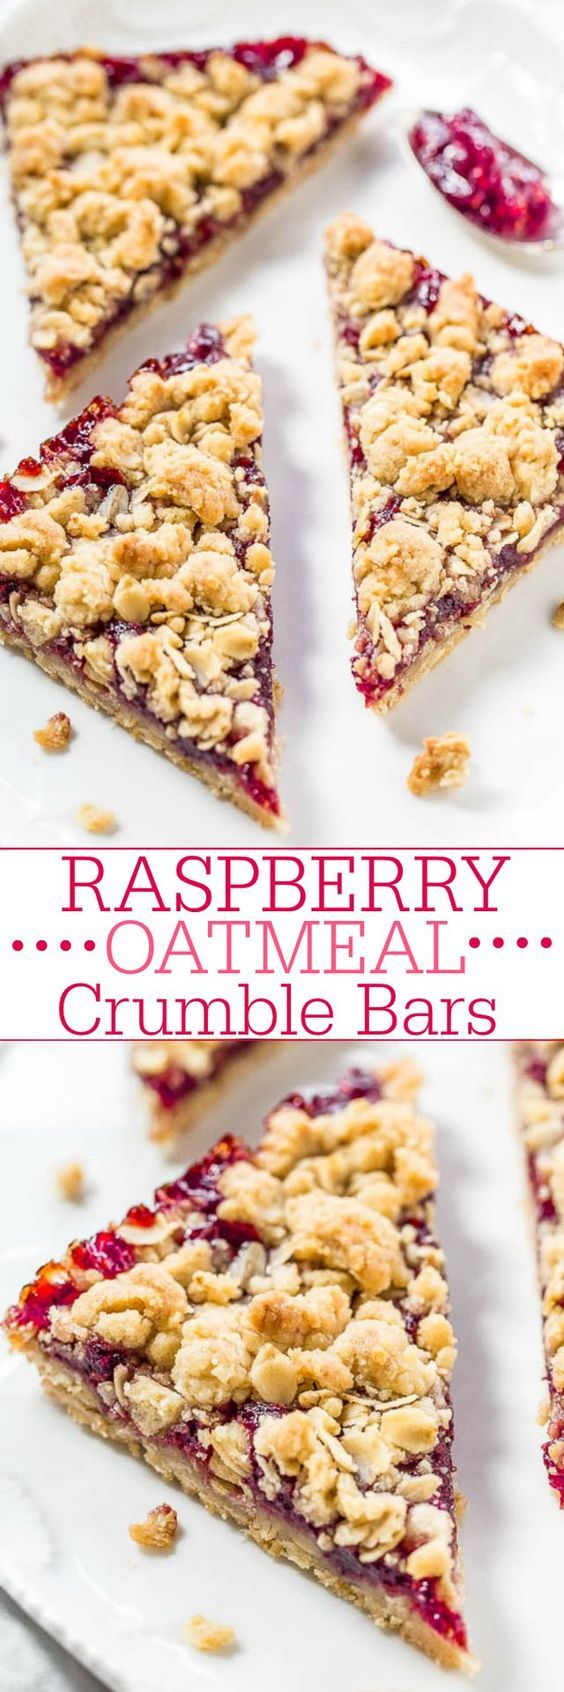 Averie Cooks Rasberry Oatmeal Crumble Bars - I love raspberries in all ways. From crisps and crumbles to bread to scones to drinks, I'm a fan. And if there's a crumble or streusel topping, the happier I am.  It's even better when the crust and c